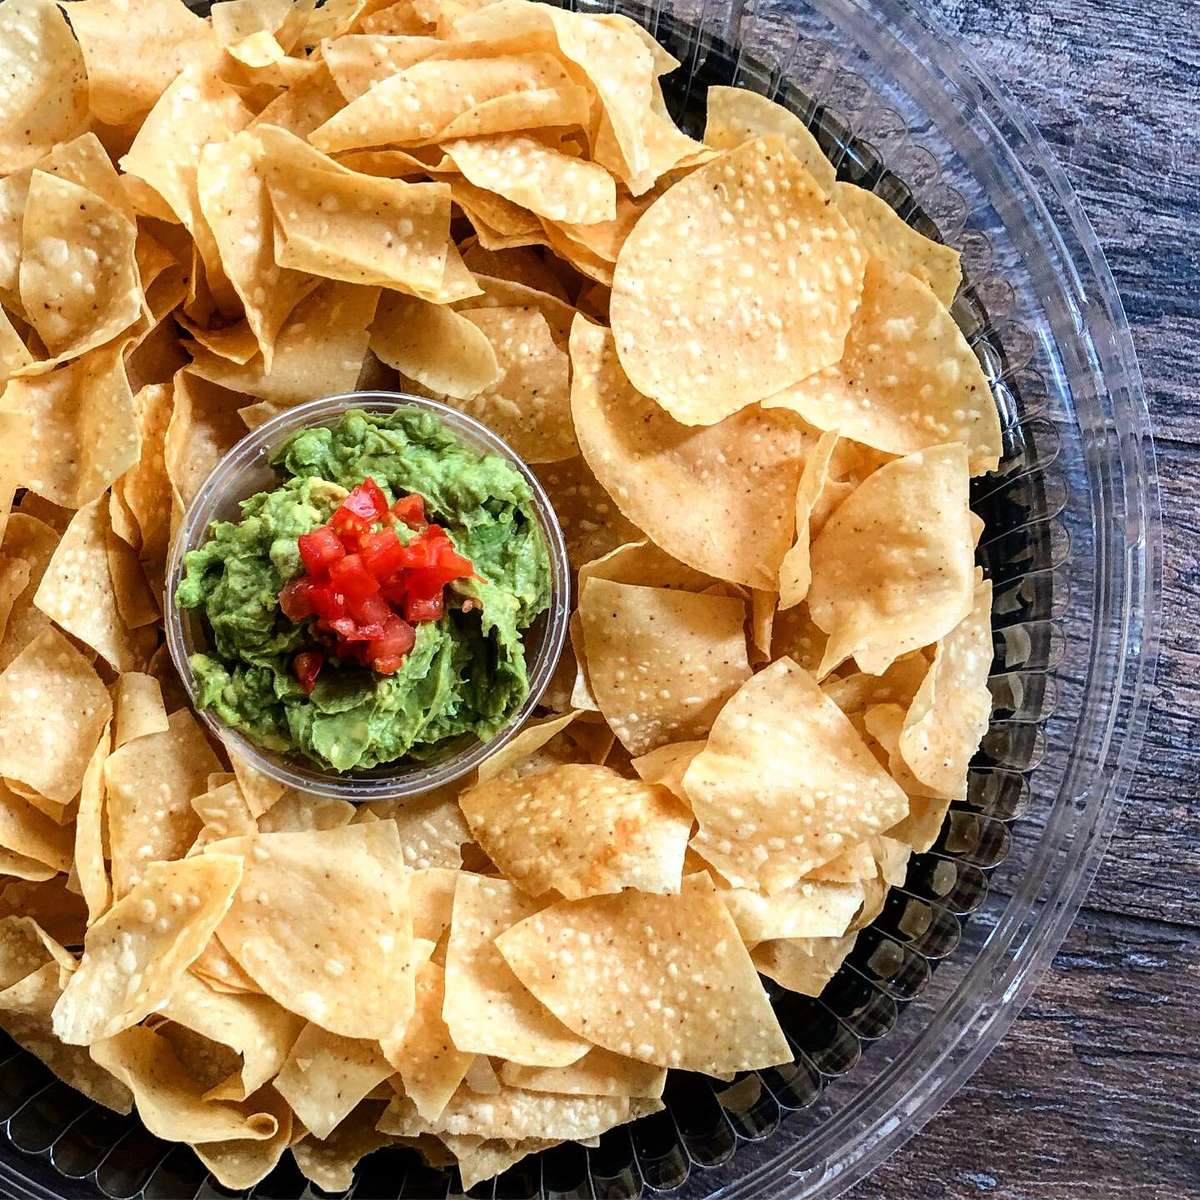 Chips and Traditional Guacamole